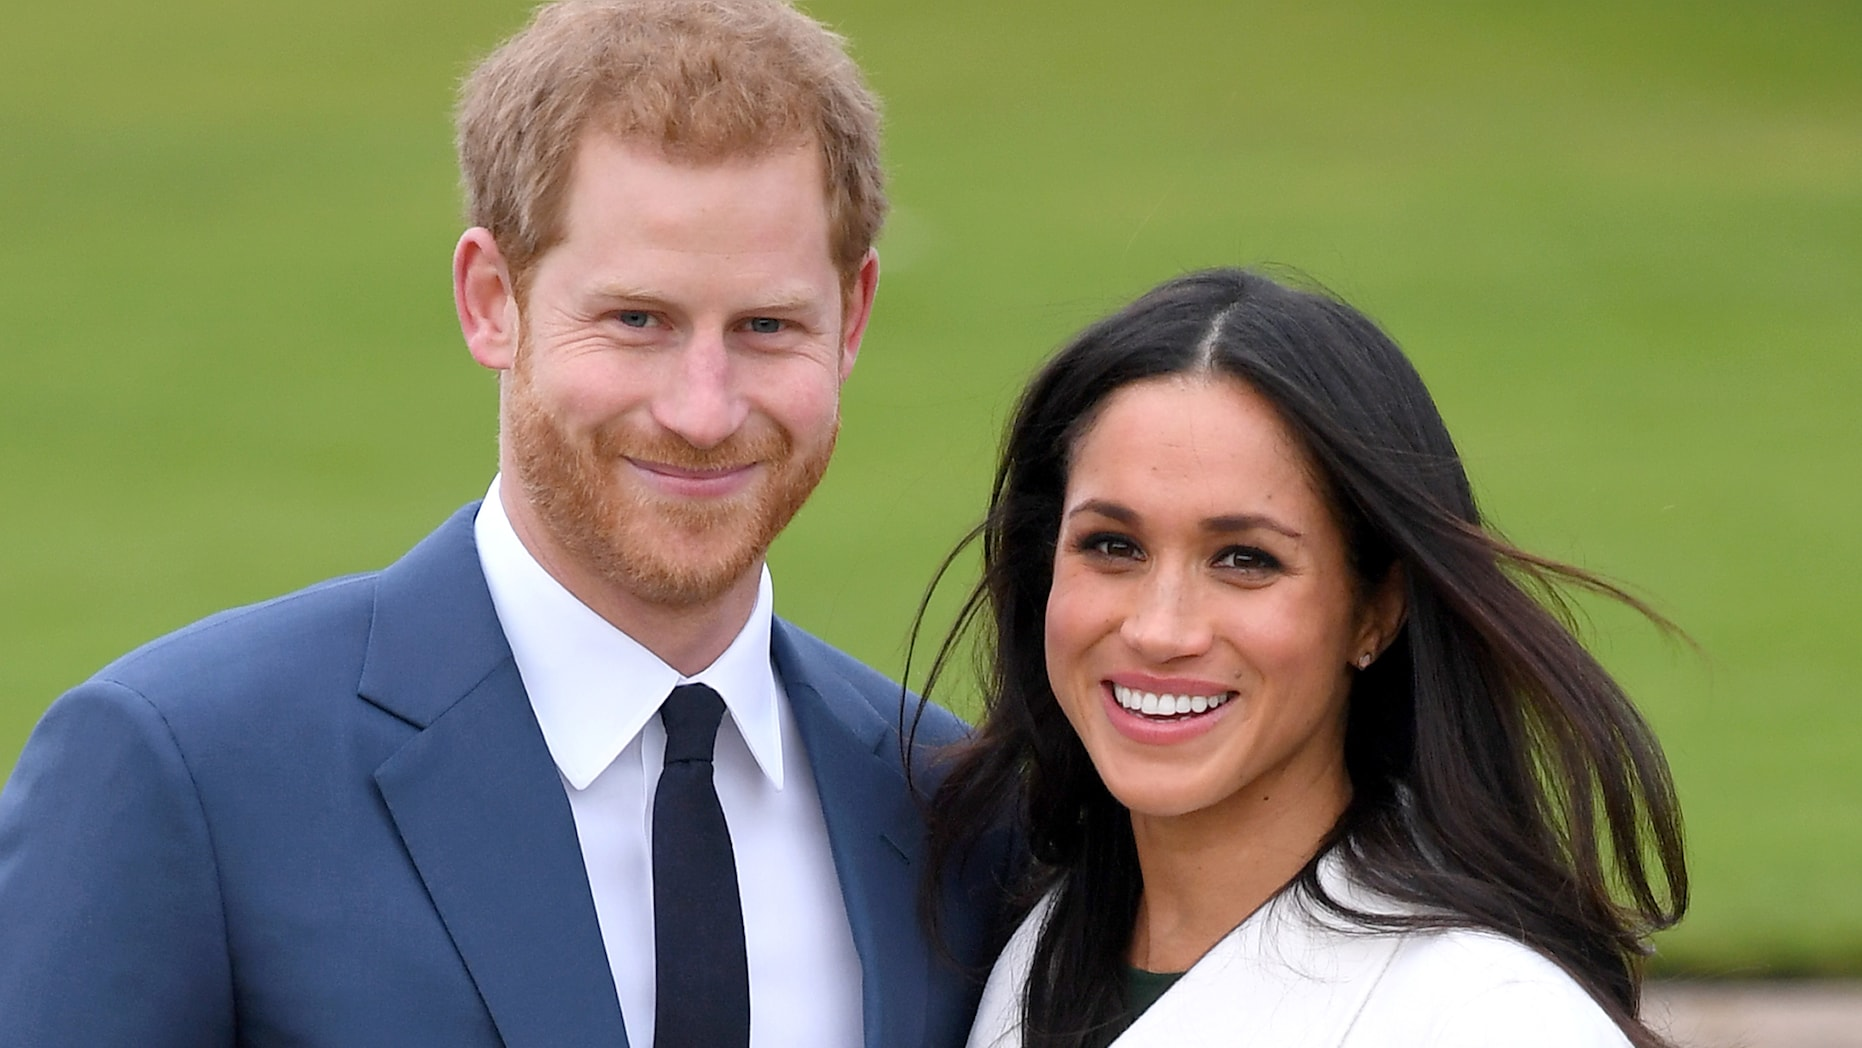 Prince Harry and Meghan, the Duchess of Sussex, open up in Oprah interview